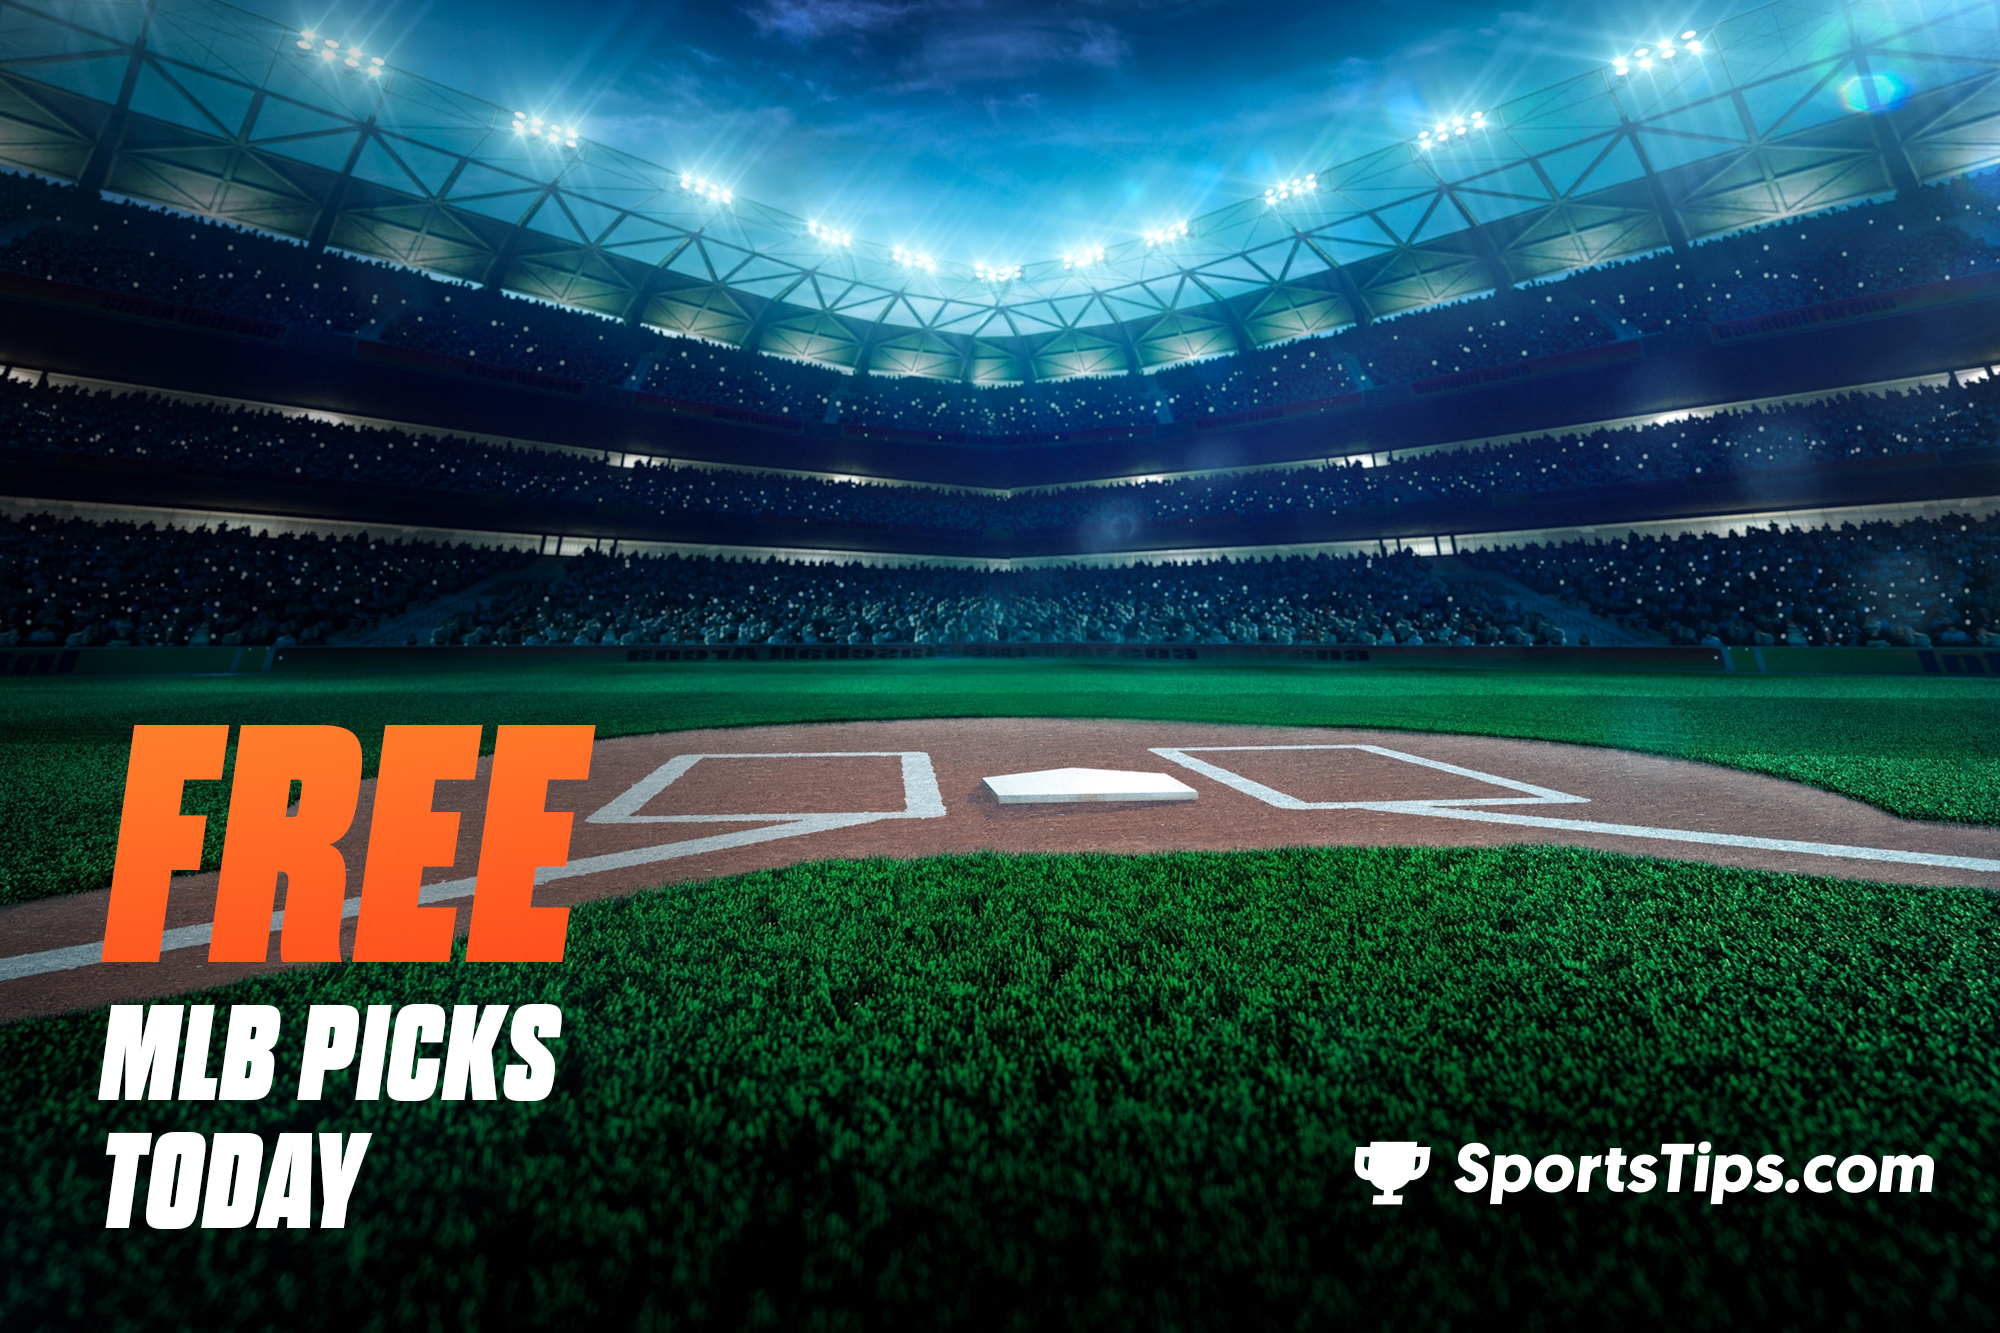 Free MLB Picks Today for Tuesday, May 4th, 2021